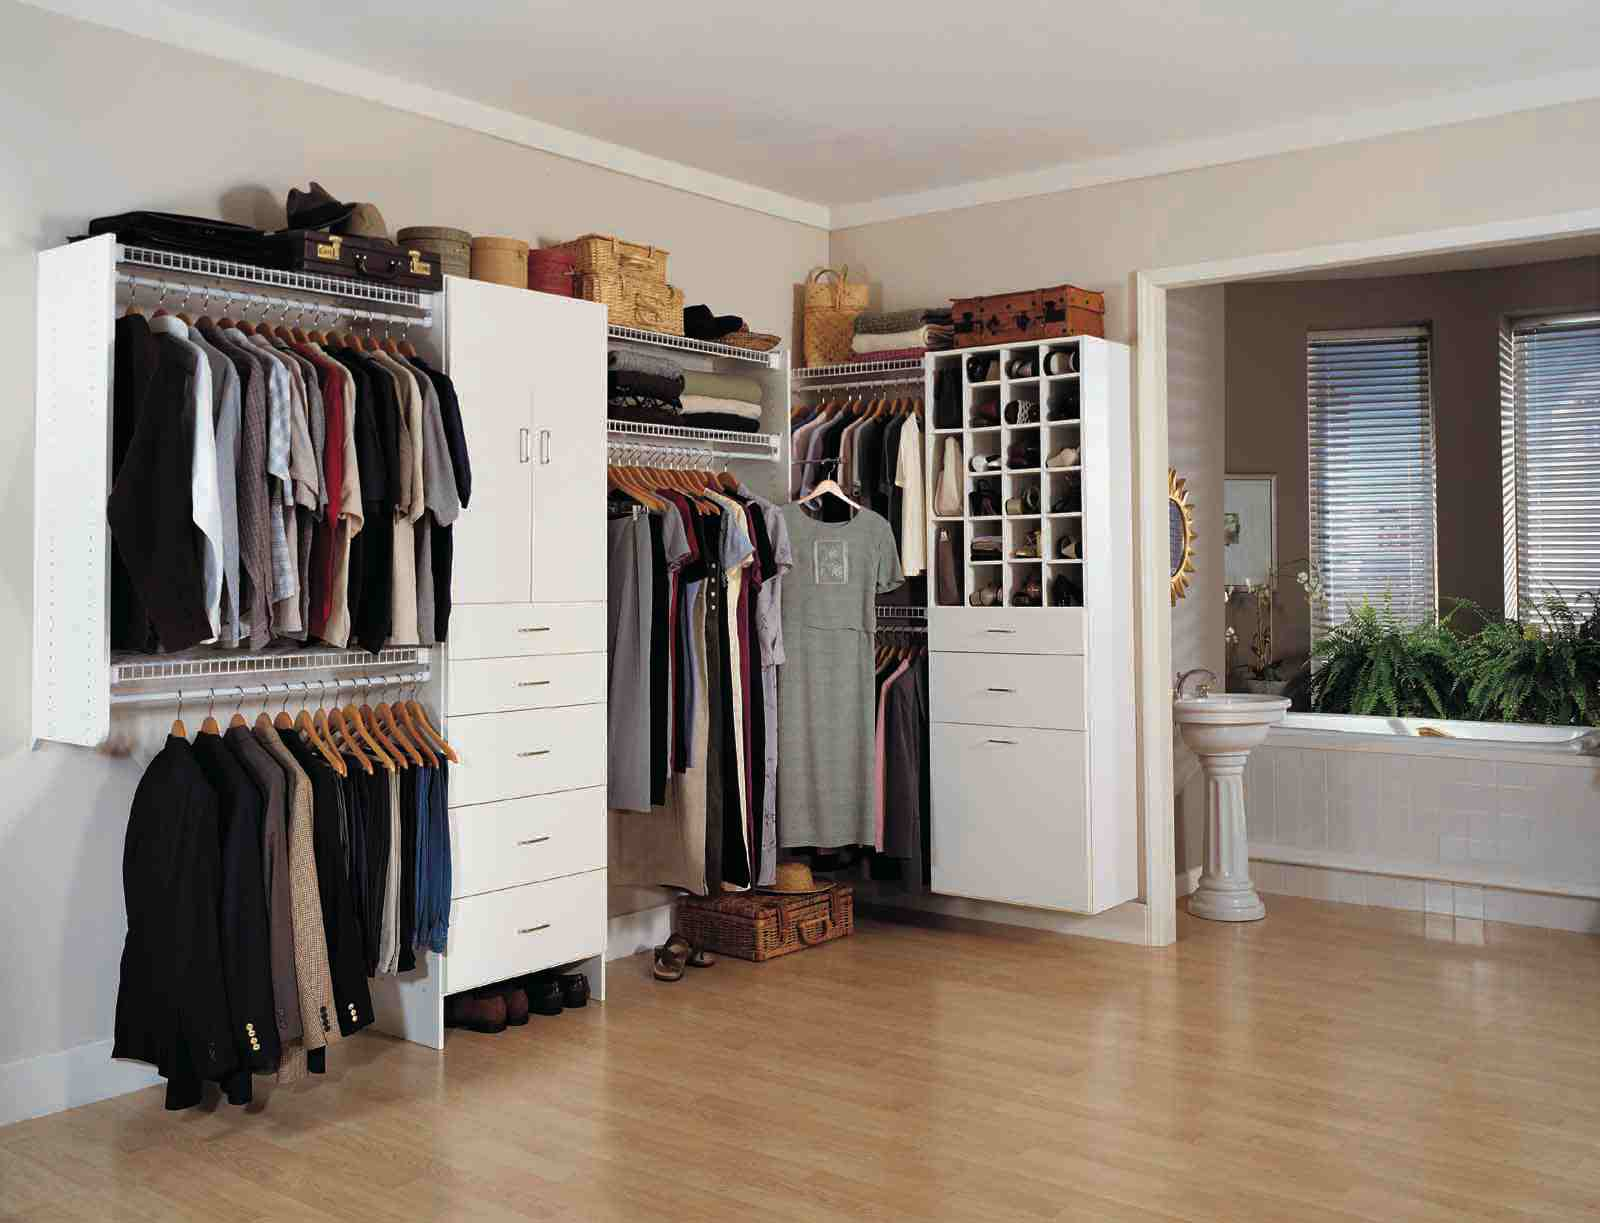 Modelos de closets walk in closet luxury interior design for Modelos de closets para dormitorios